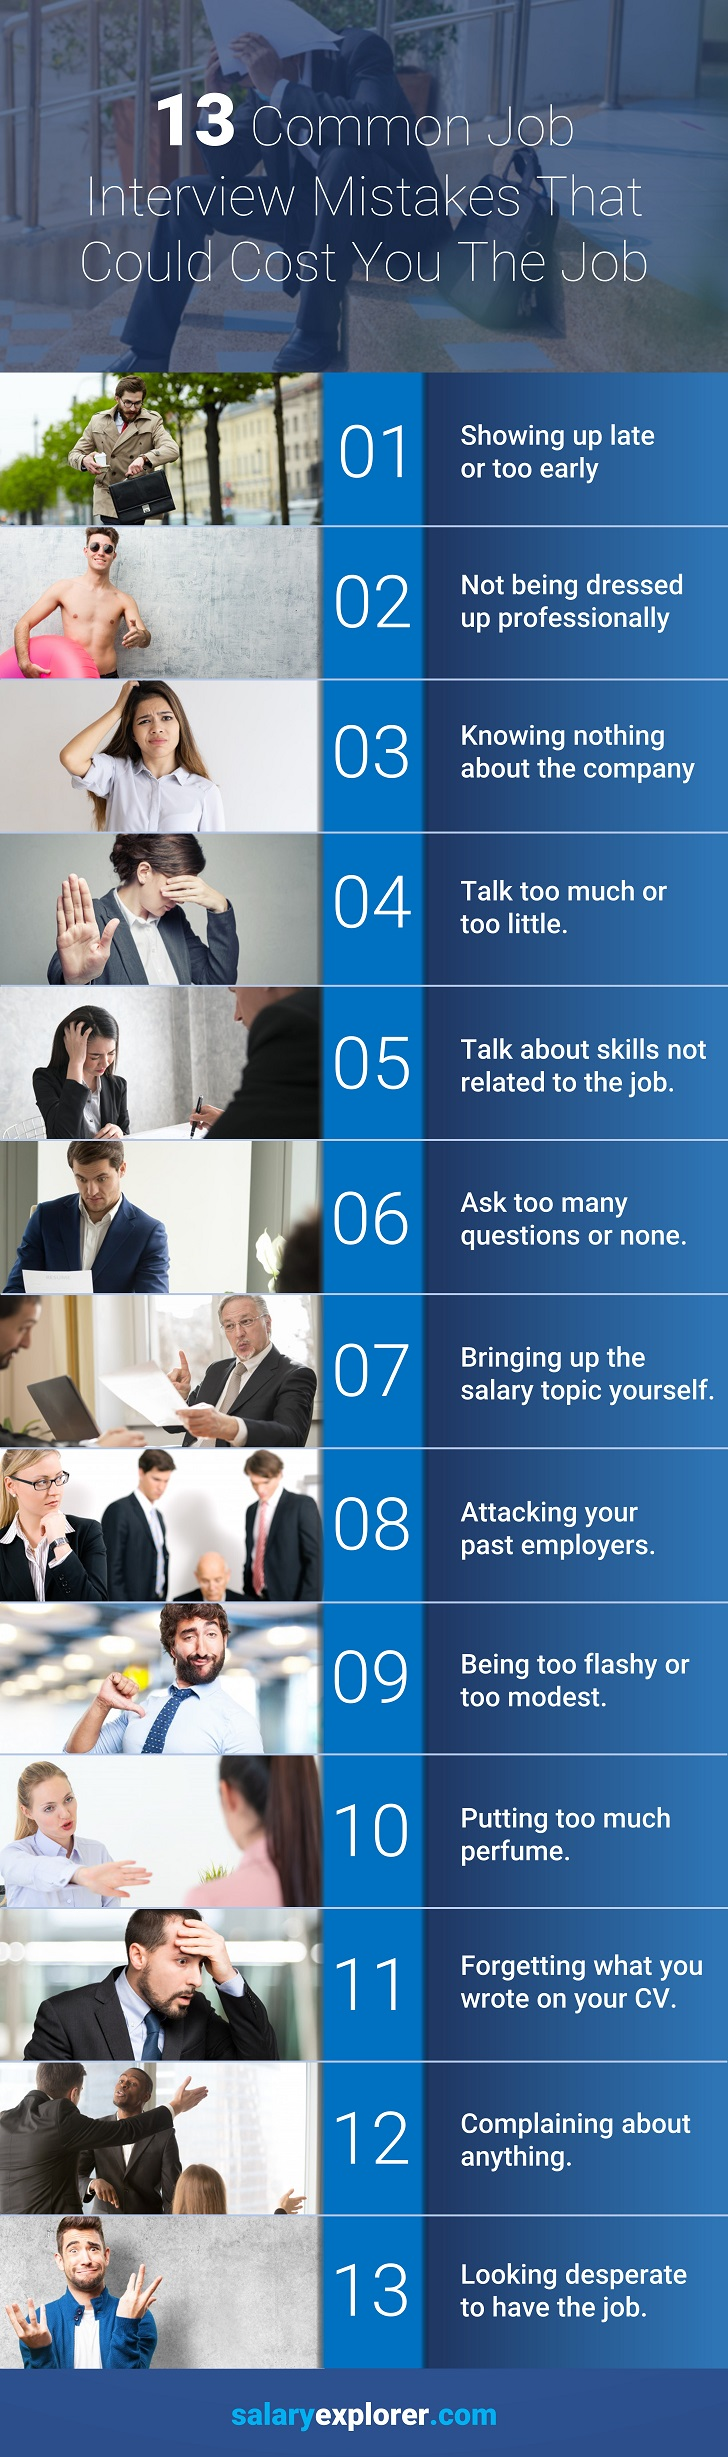 13 Deadly Job Interview Mistakes That You Should Never Make